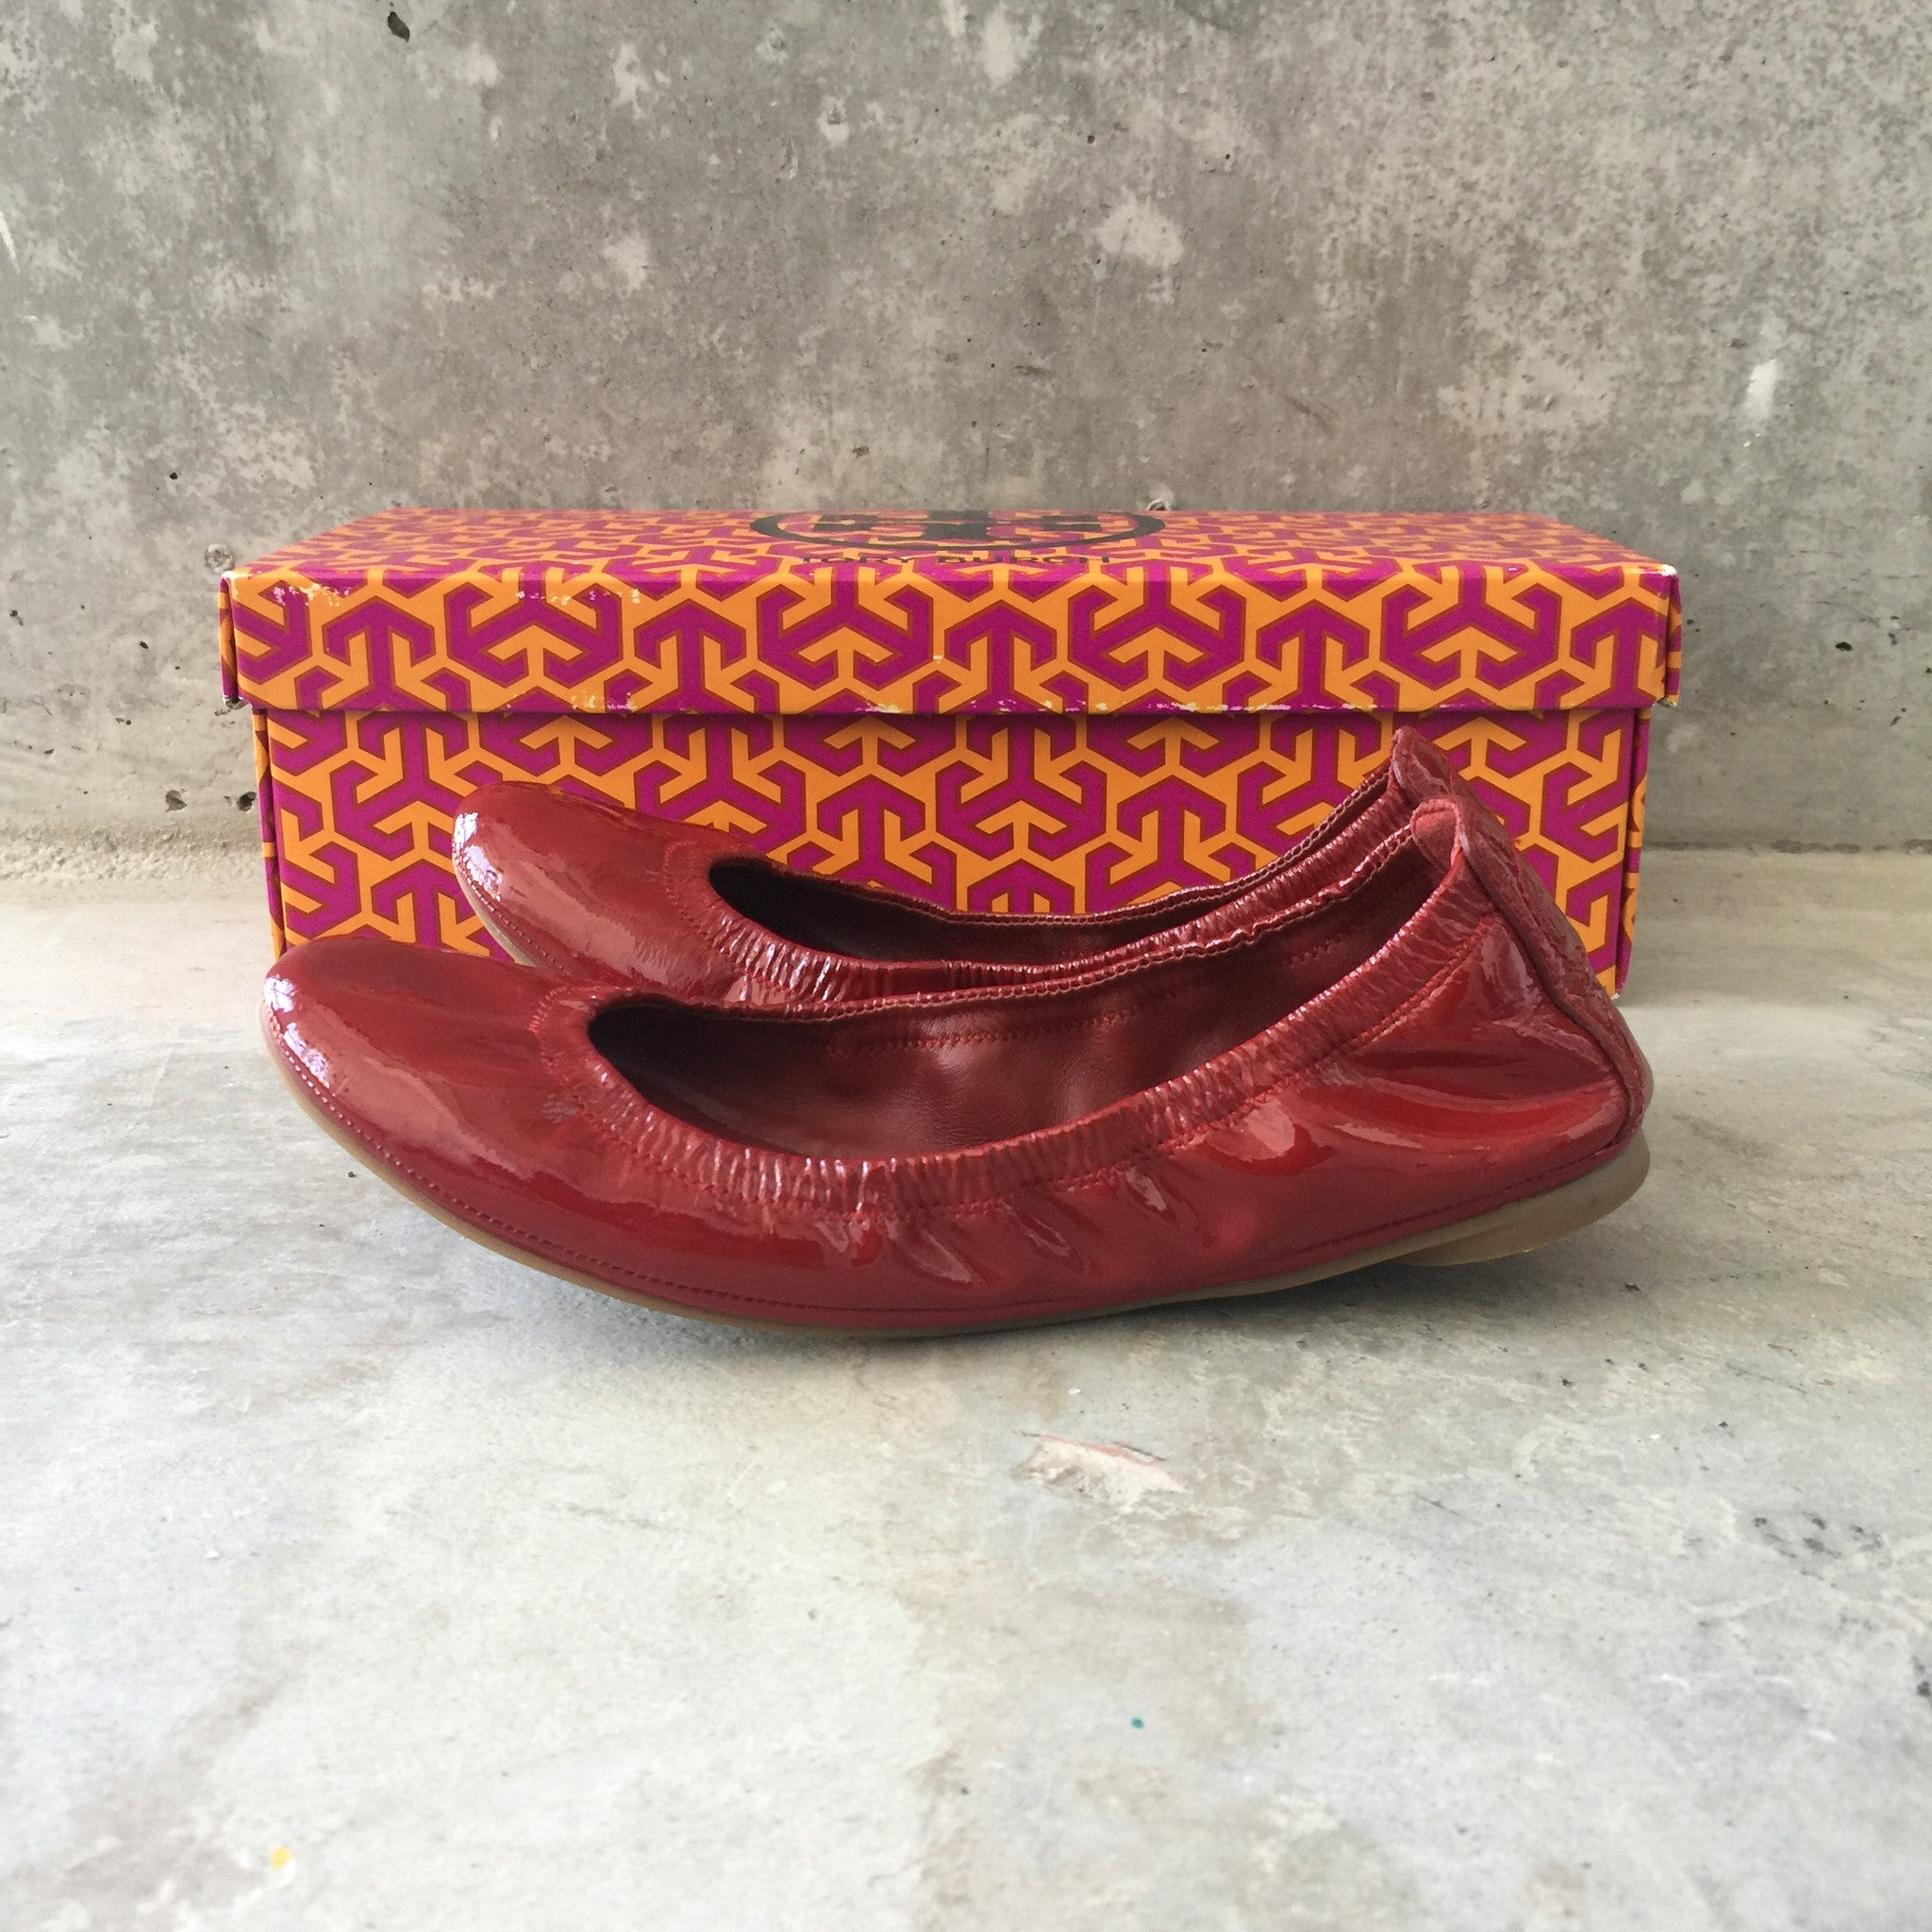 Authentic TORY BURCH Patent Ballet Size 5